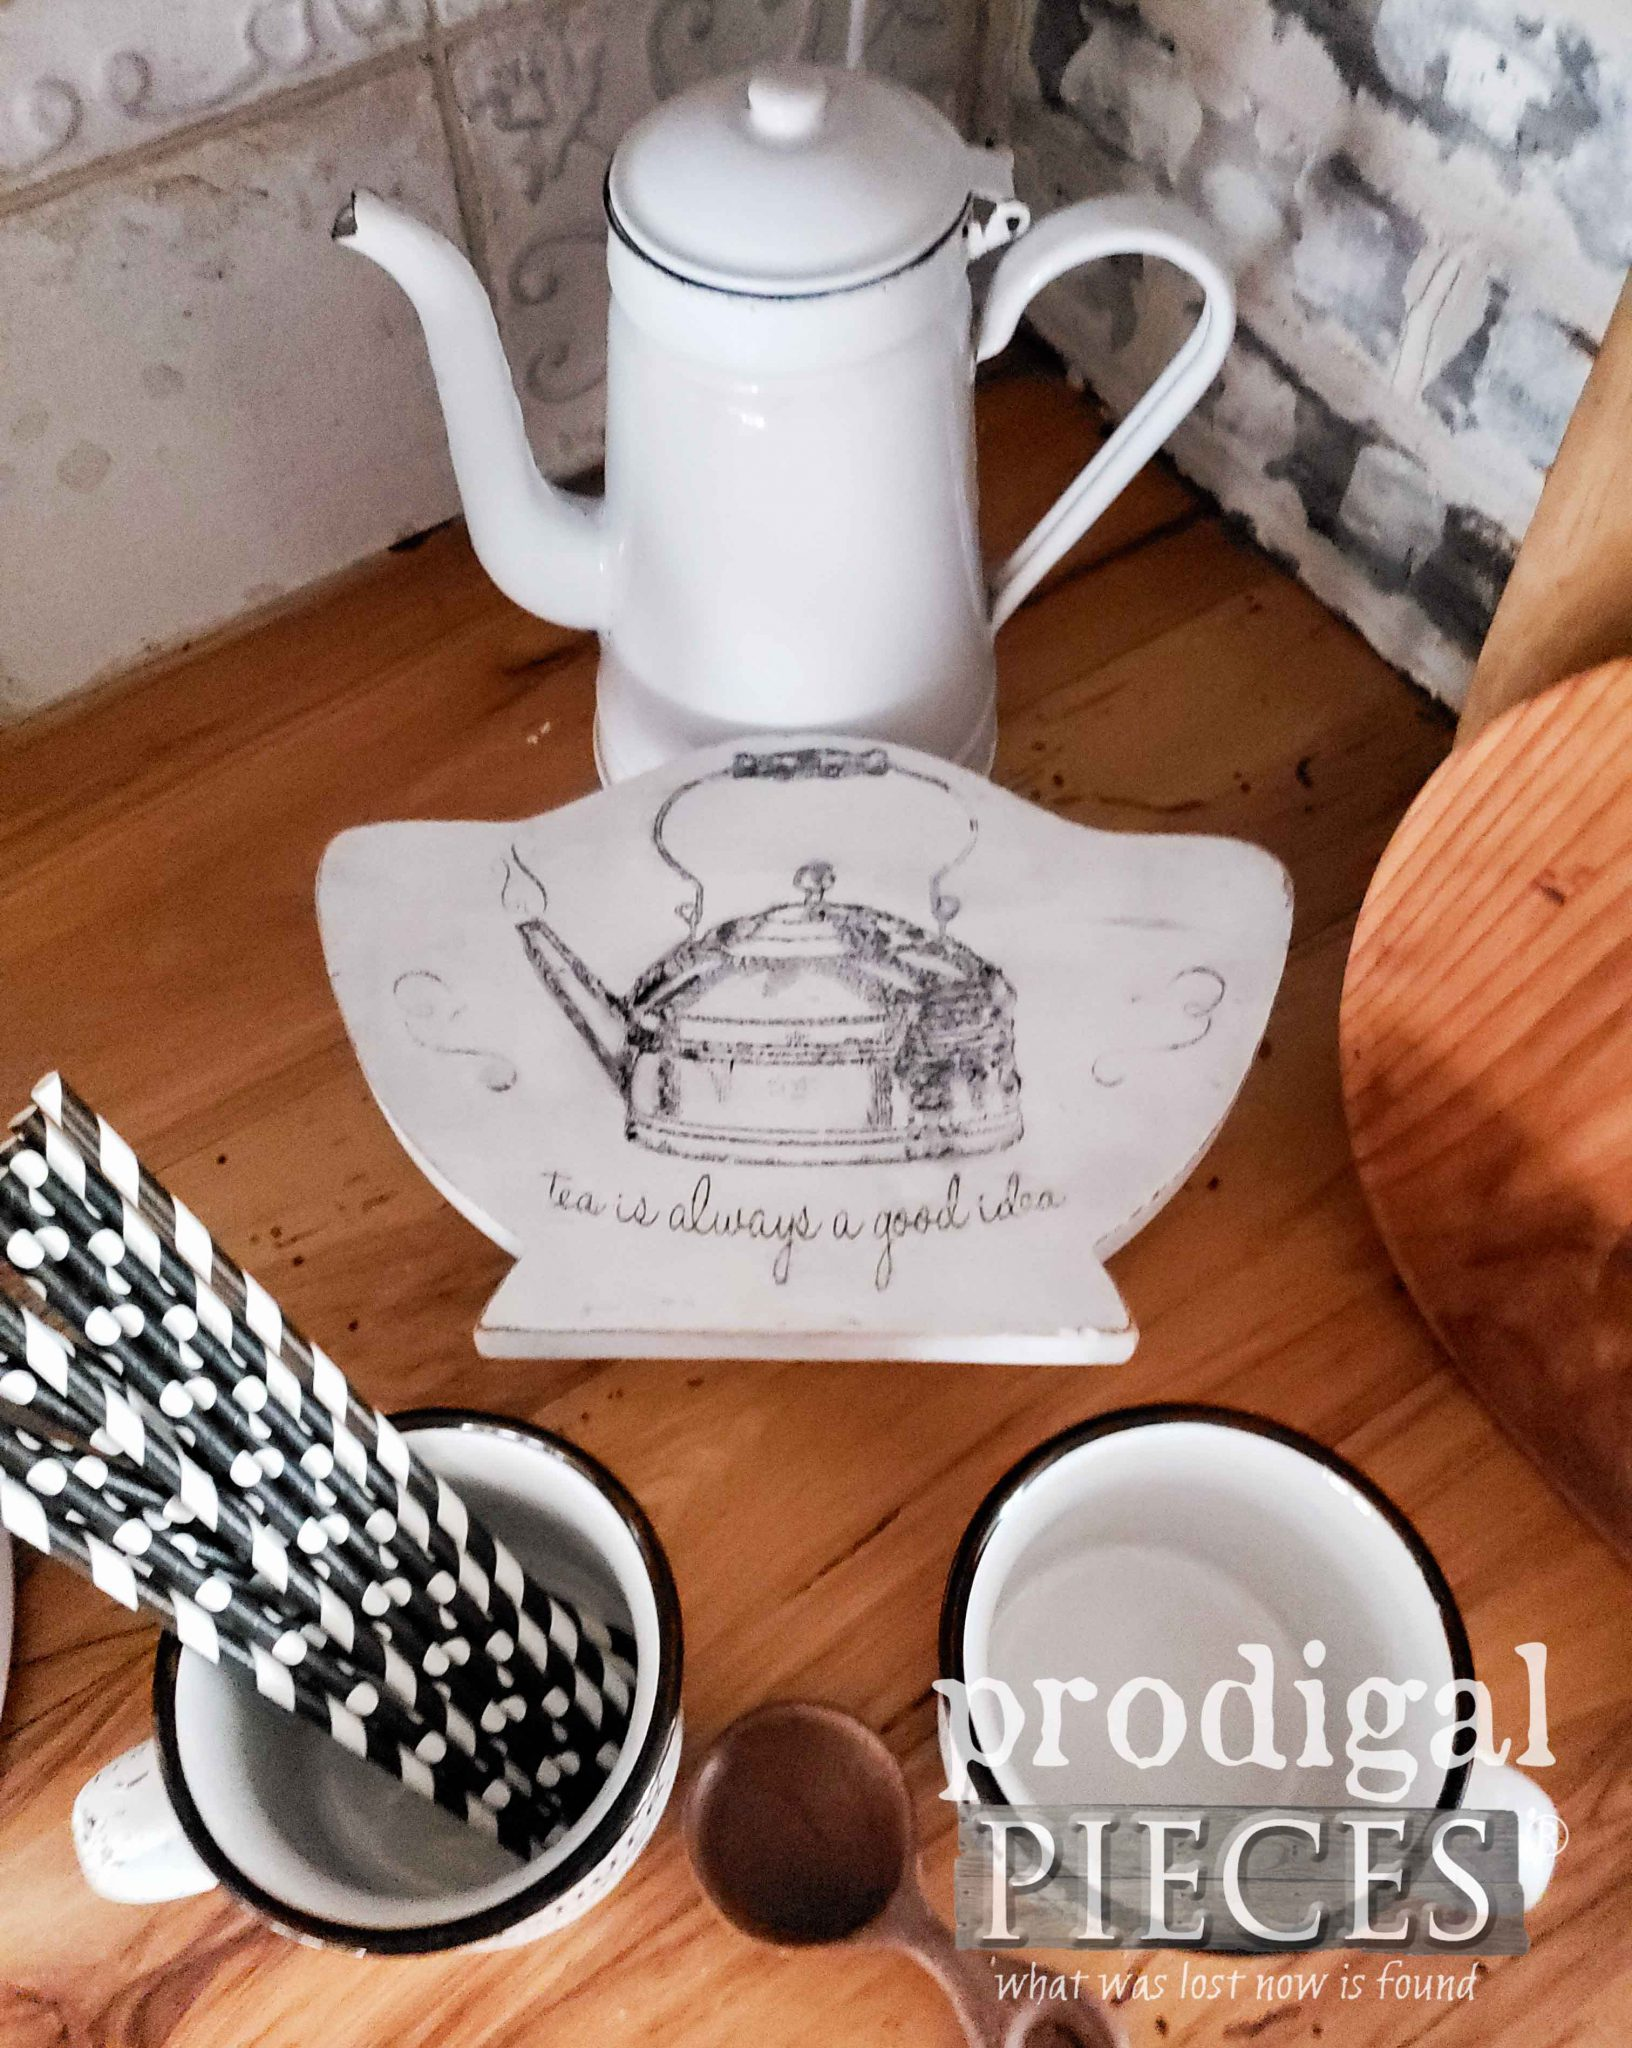 DIY Teapot Trivet Riser from Upcycled Paper Plate Holder by Larissa of Prodigal Pieces | prodigalpieces.com #prodigalpieces #diy #home #farmhouse #homedecor